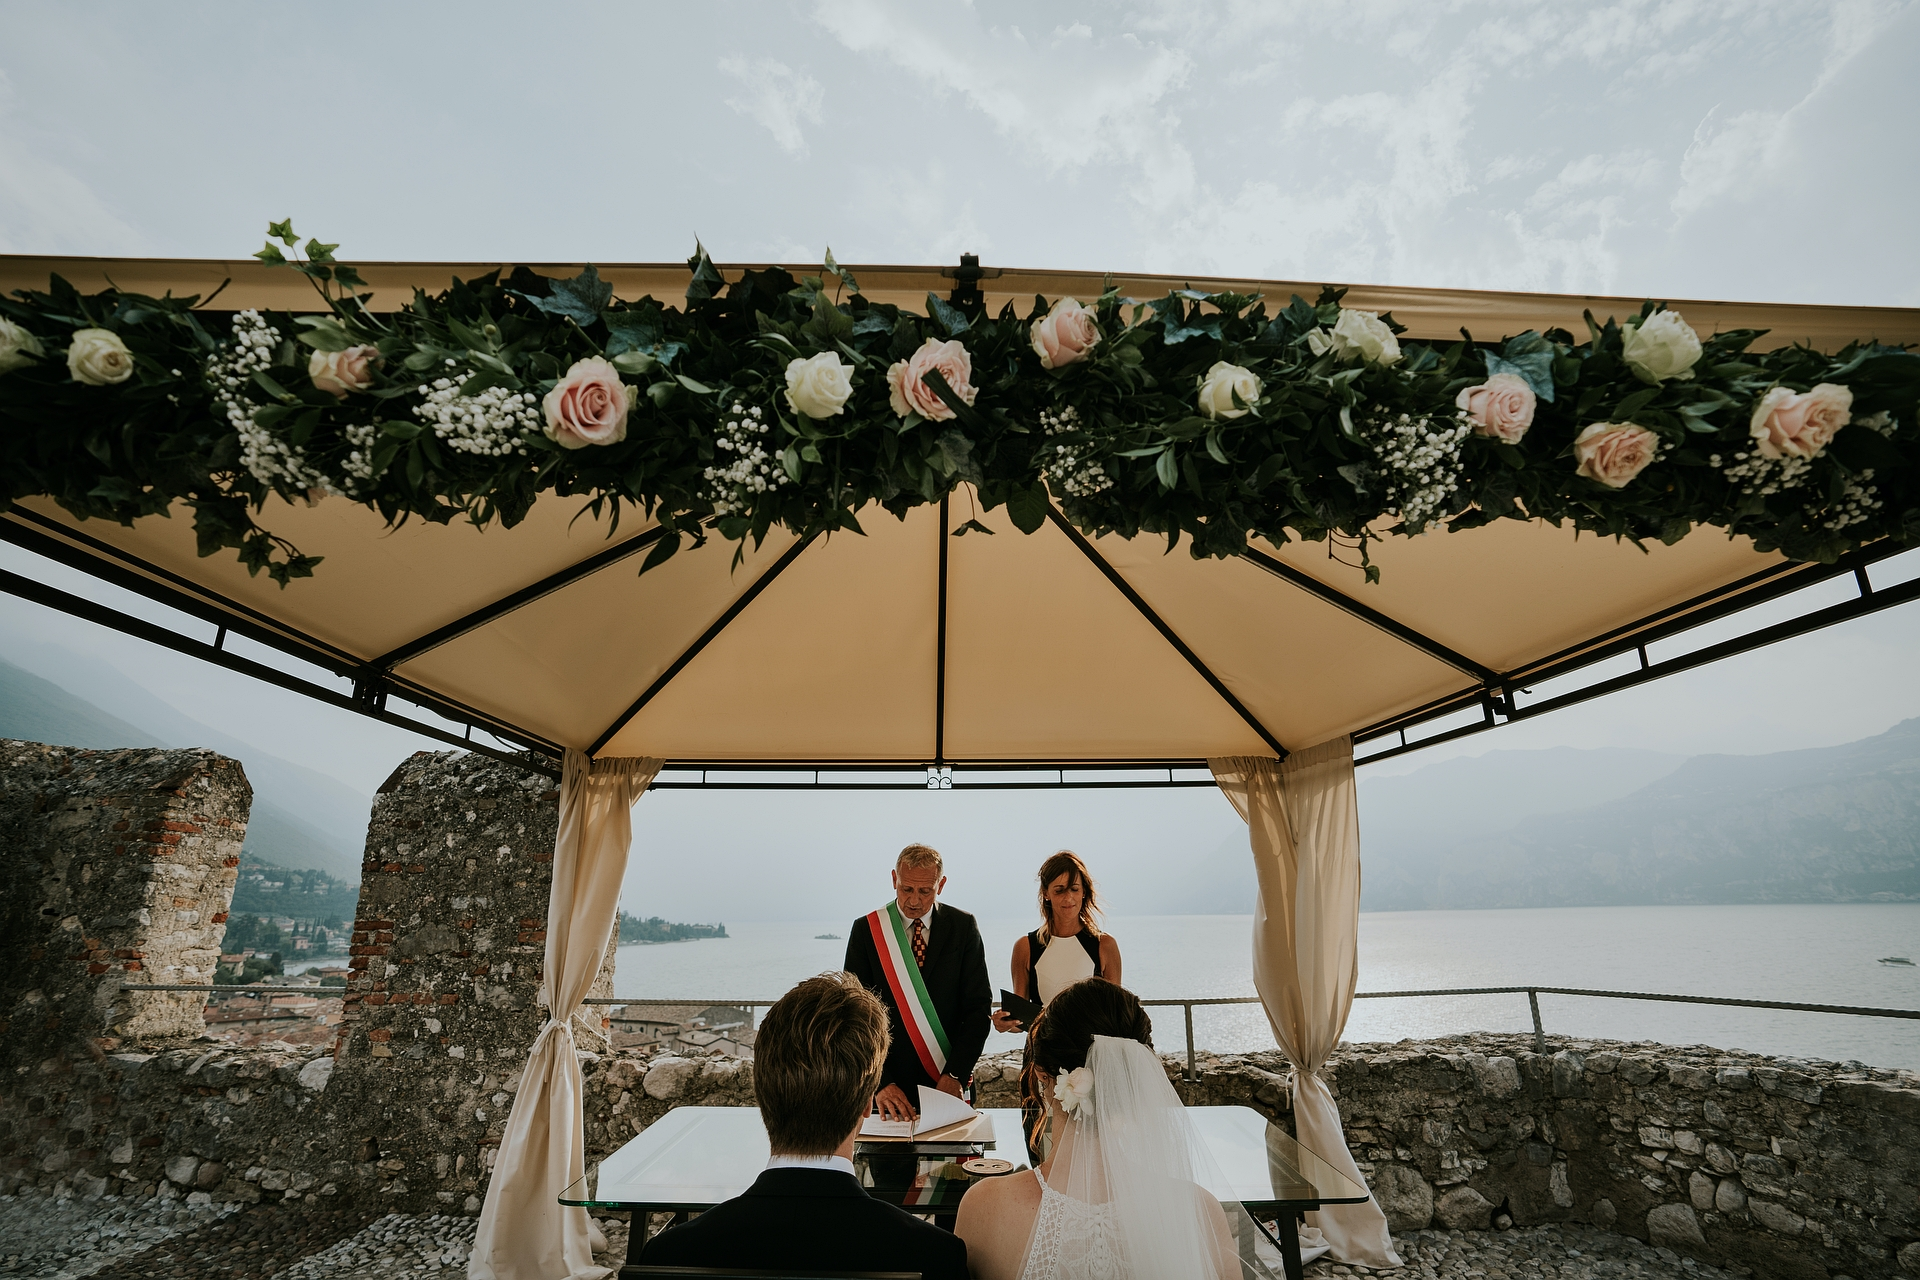 Terrazza Rivellino - Italy Elopement Ceremony Photo | A moment during the ceremony